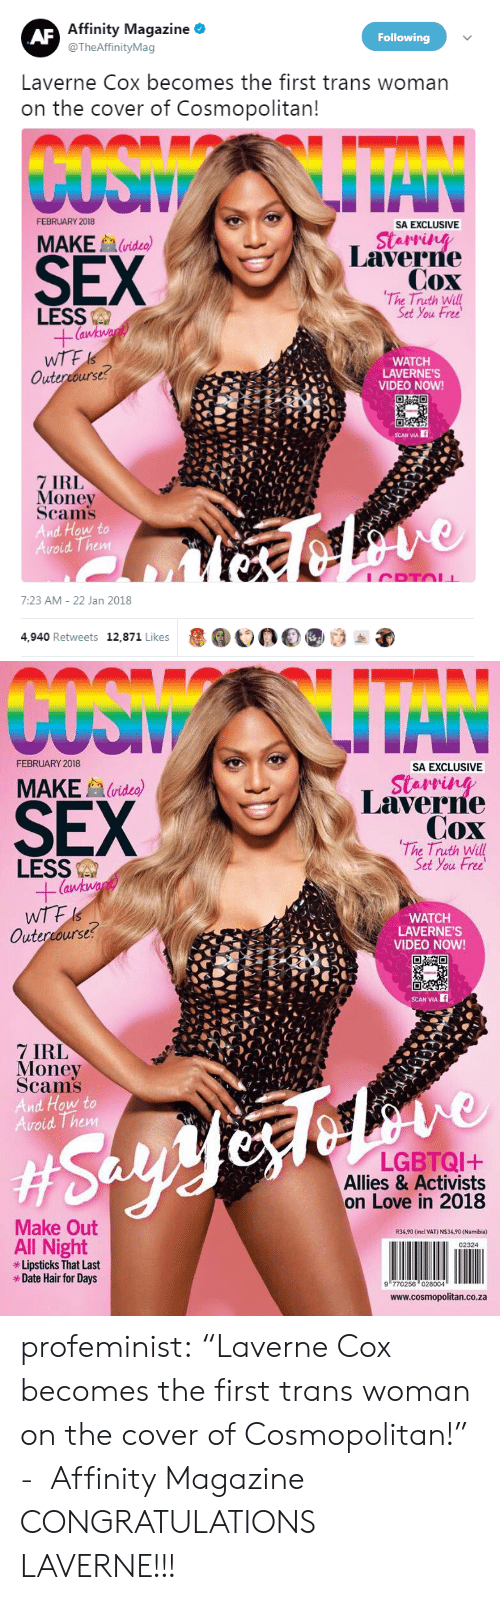 """Cosmopolitan: Affinity Magazine *  @TheAffinityMag  Following  Laverne Cox becomes the first trans woman  on the cover of Cosmopolitan  FEBRUARY 2018  SA EXCLUSIVE  SEX  MAKE  (video)  Laverne  Cox  The Truth Will  Set You Free  LESS  WTF  Outercourse  WATCH  LAVERNE'S  VIDEO NOW!  CEL  7 IRL  Money  Scams  And How to  Avoid Them  7:23 AM- 22 Jan 2018  4,940 Retweets 12,871 Likes  1000   FEBRUARY 2018  SA EXCLUSIVE  SEX  MAKEvideo)  Laverre  Cox  The Truth Will  Set You Free  LESS  (a  WATCH  LAVERNE'S  VIDEO NOW!  Outercourse?  SCAN VIA  7 IRL  Money  Scams  And How to  oid Them  LGBTQI+  Allies & Activists  on Love in 2018  Make Out  R34,90 (incl VAT) N$34,90 (Namibia)  All Night  Lipsticks That Last  *Date Hair for Days  02324  9 770256 028004  www.cosmopolitan.co.za profeminist:    """"Laverne Cox becomes the first trans woman on the cover of Cosmopolitan!""""   - Affinity Magazine   CONGRATULATIONS LAVERNE!!!"""